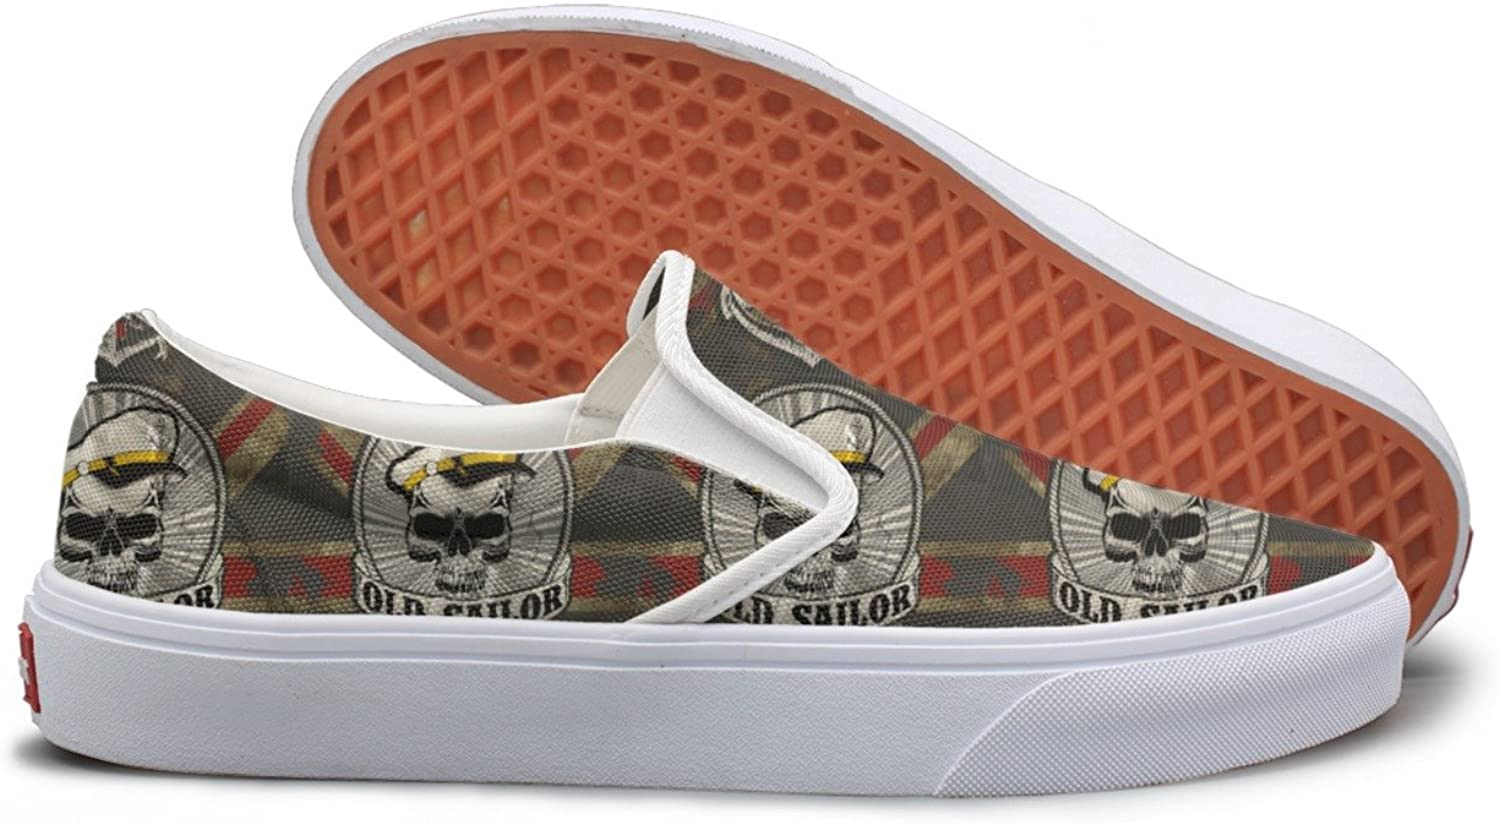 SEERTED Sailor Man Skull Skull Pirate Flag Canvas shoes Women Casual